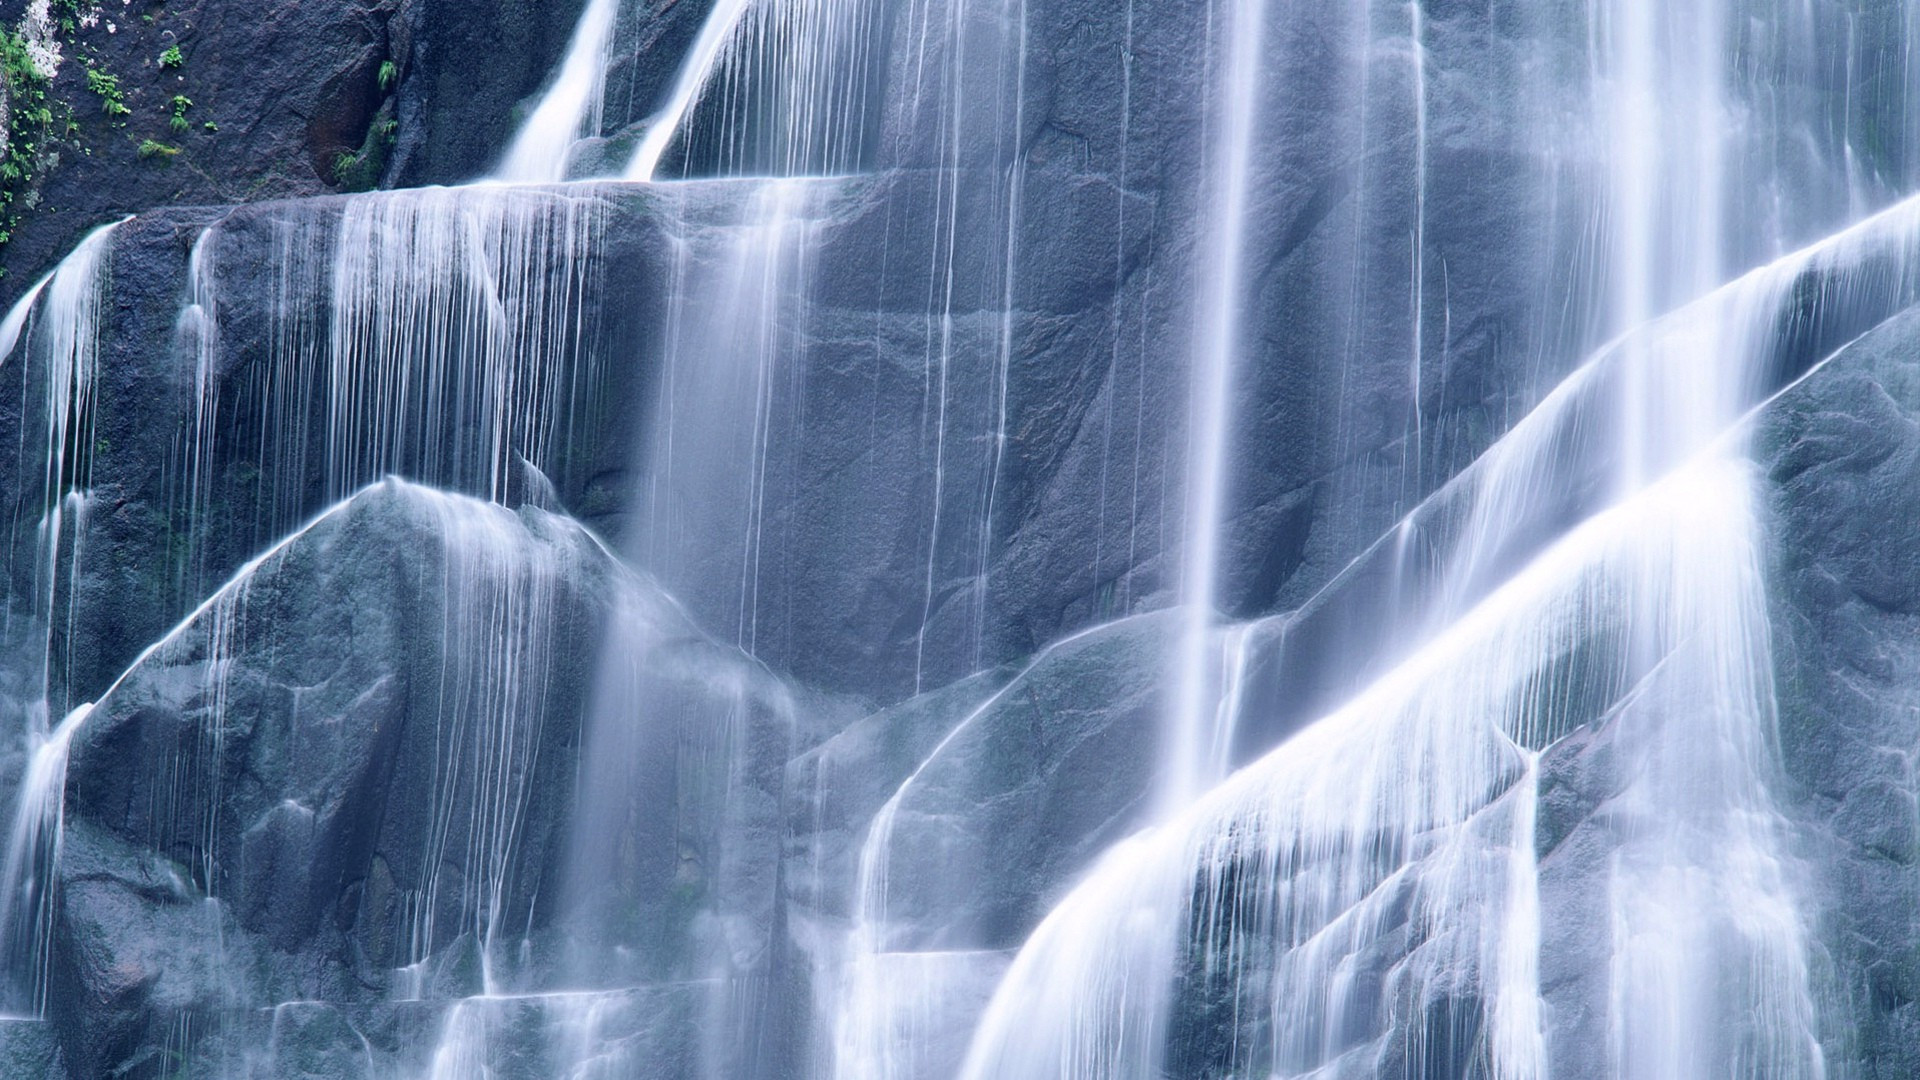 Waterfall Blue Falls High Difinition Hd Wallpaper Free Image